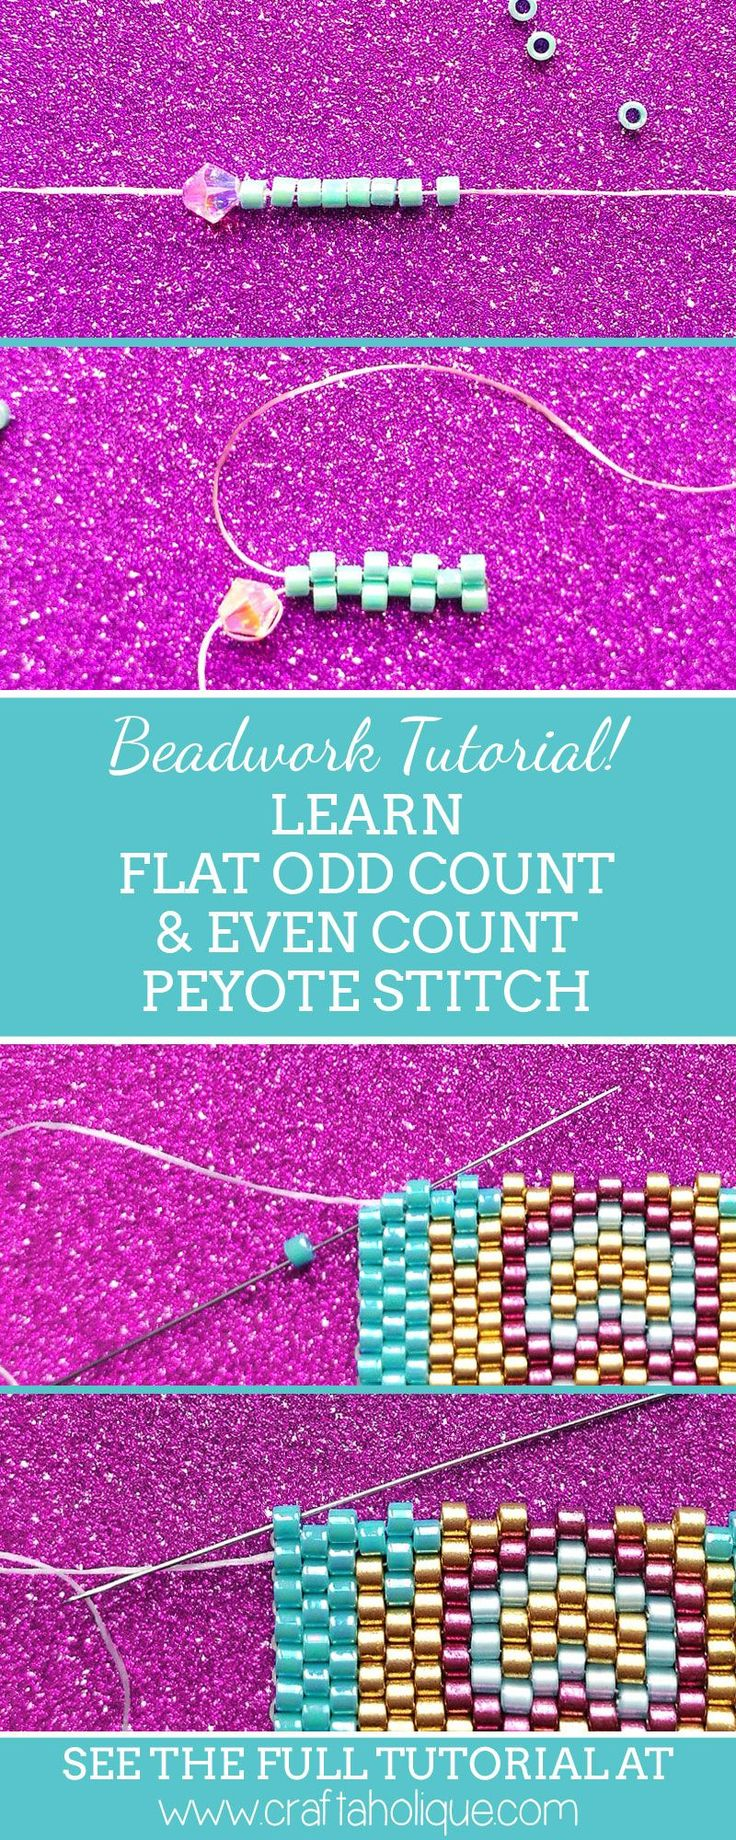 Learn flat even count and flat odd count peyote stitch in this beadwork tutorial from Craftaholique. Make peyote stitch bracelets, rings, earrings and more!